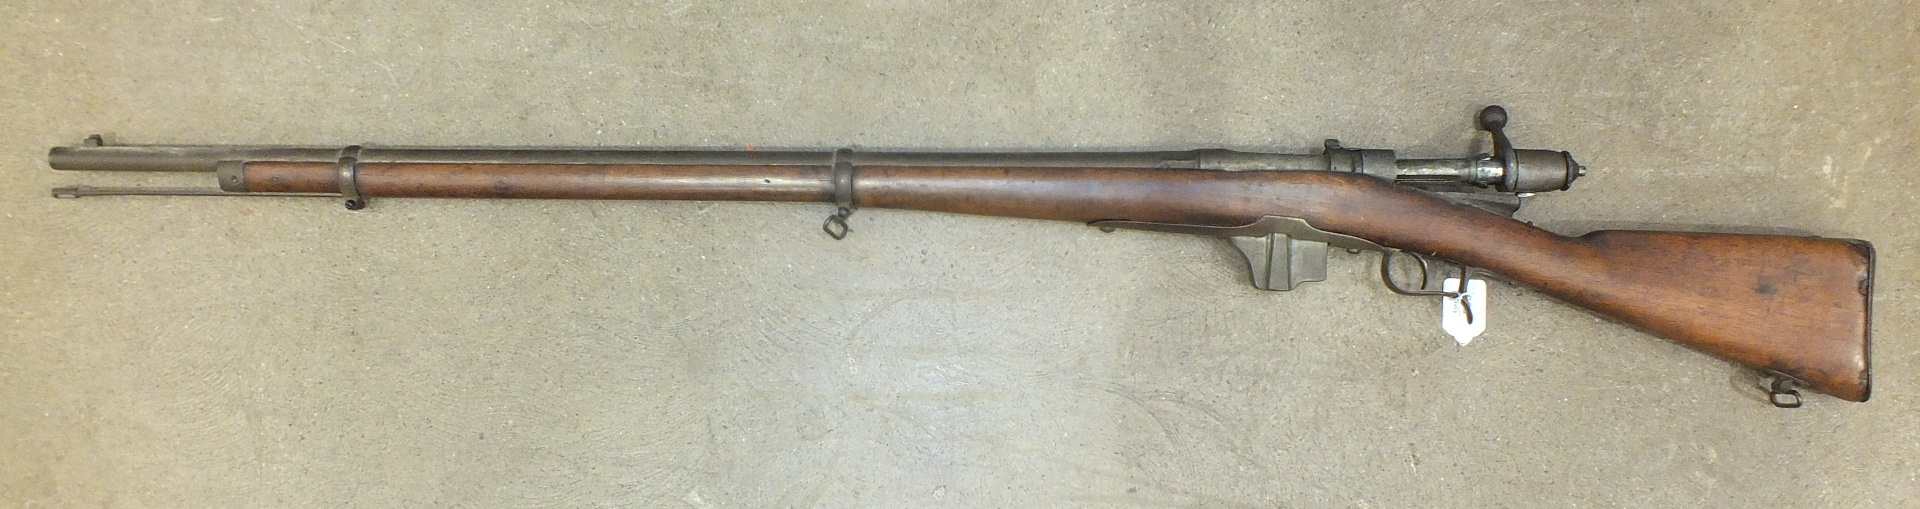 Lot 593 - A Torre Annunziata 1889 10.5mm bolt-action rifle with full wood stock and rammer, 135cm overall,